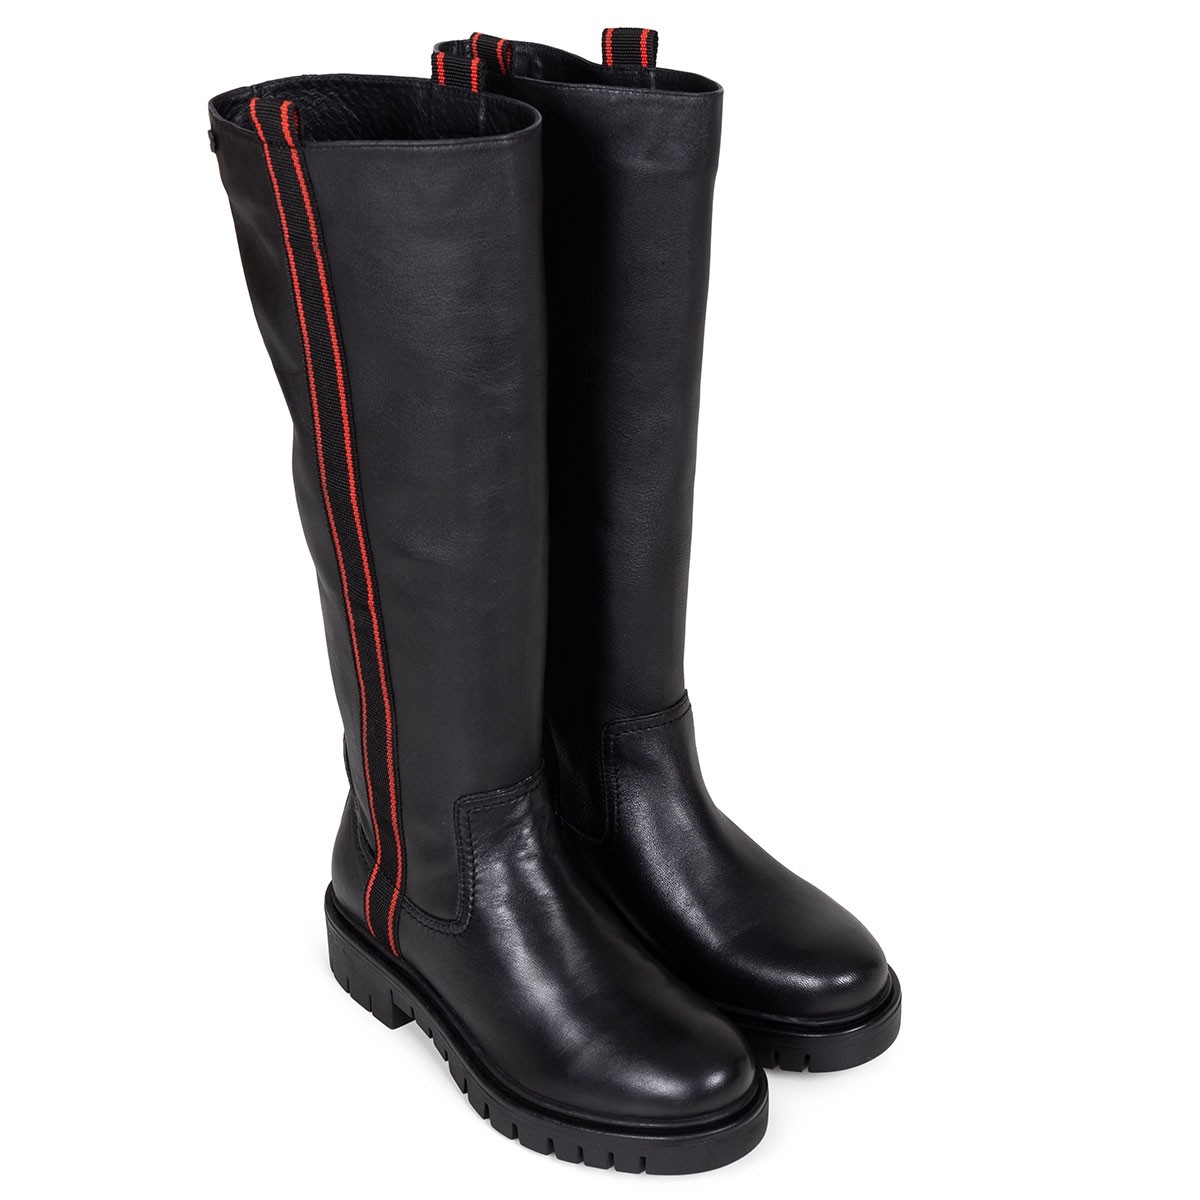 56553 Black BOOTS 5